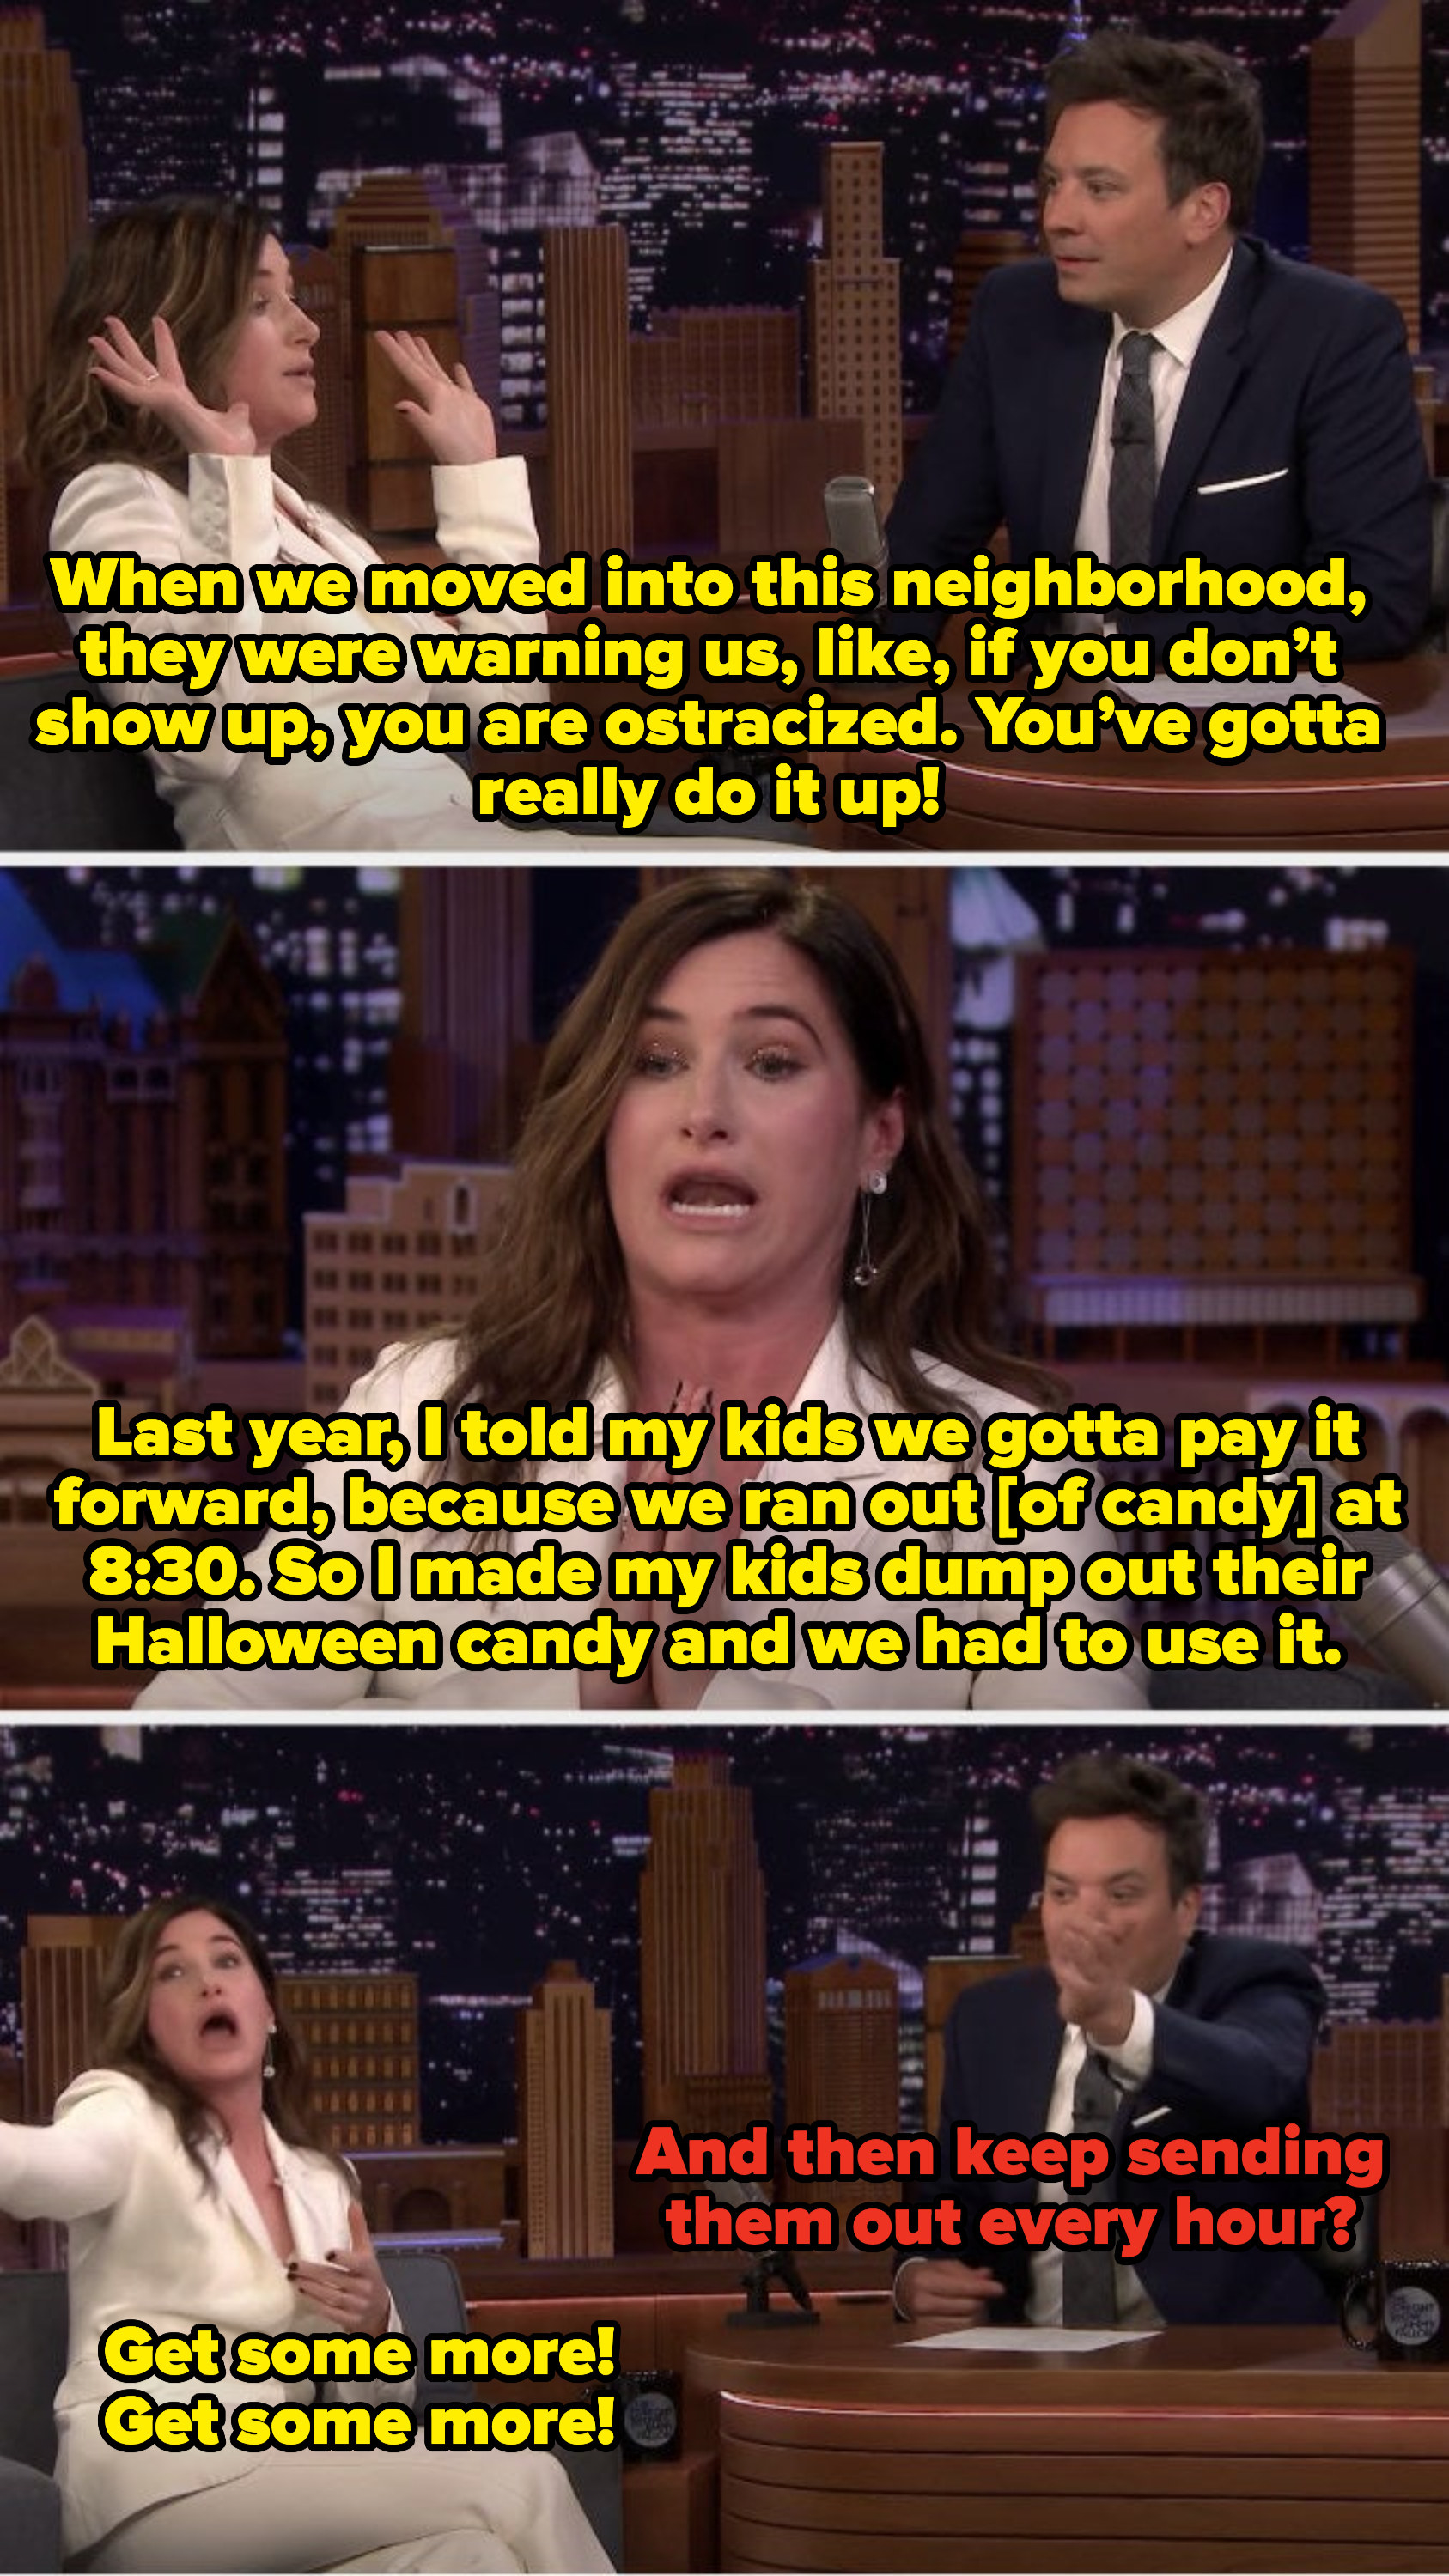 Her telling a story of moving to an over-the-top neighborhood, running out of candy early on Halloween, having her kids dump theirs our to hand out, and joking that she'd keep sending them out to get more